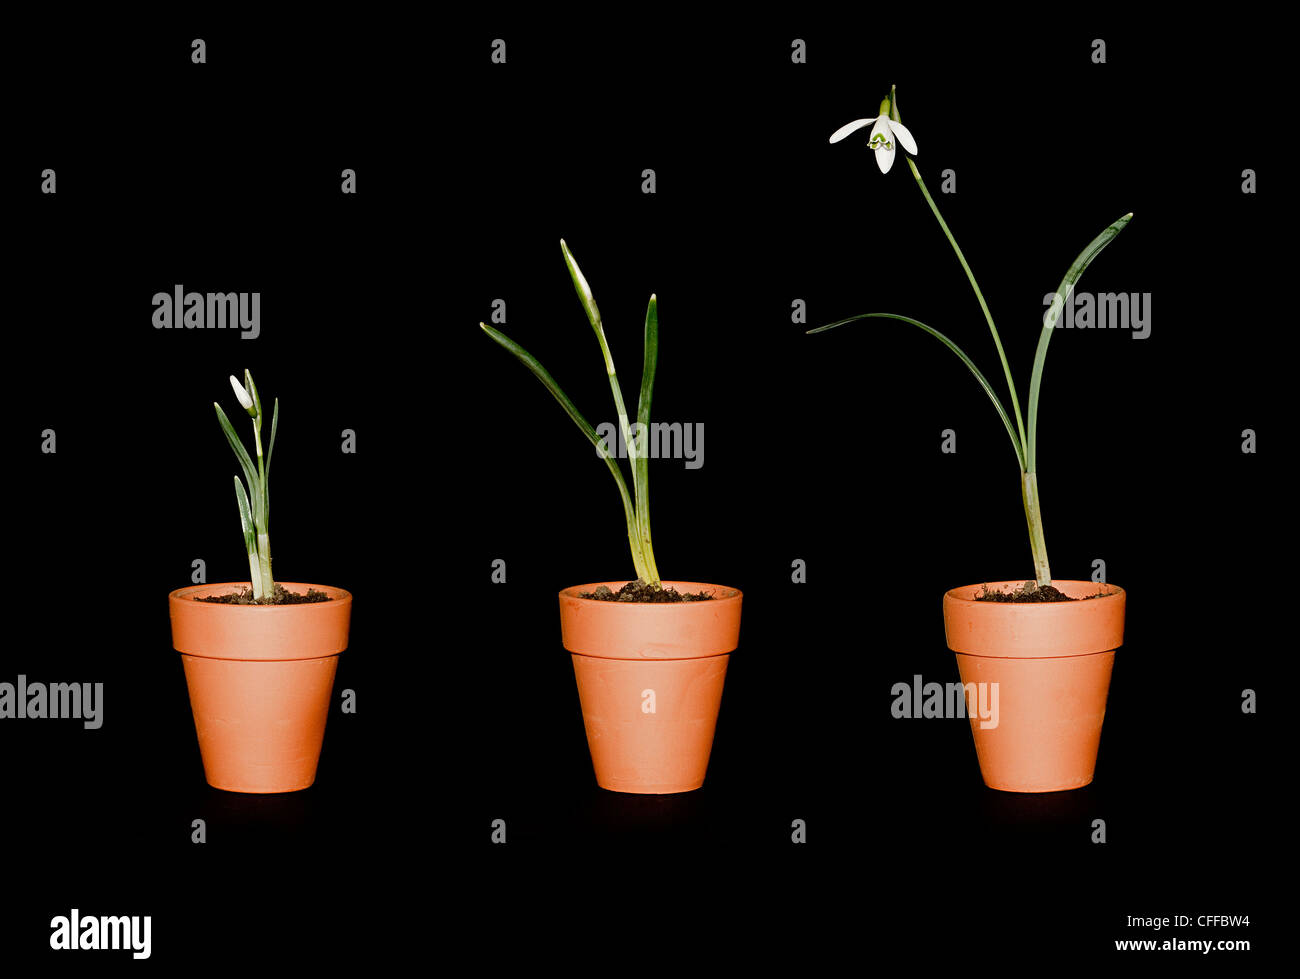 three snowdrops of varying maturity in terracotta plant pots on a black background - Stock Image